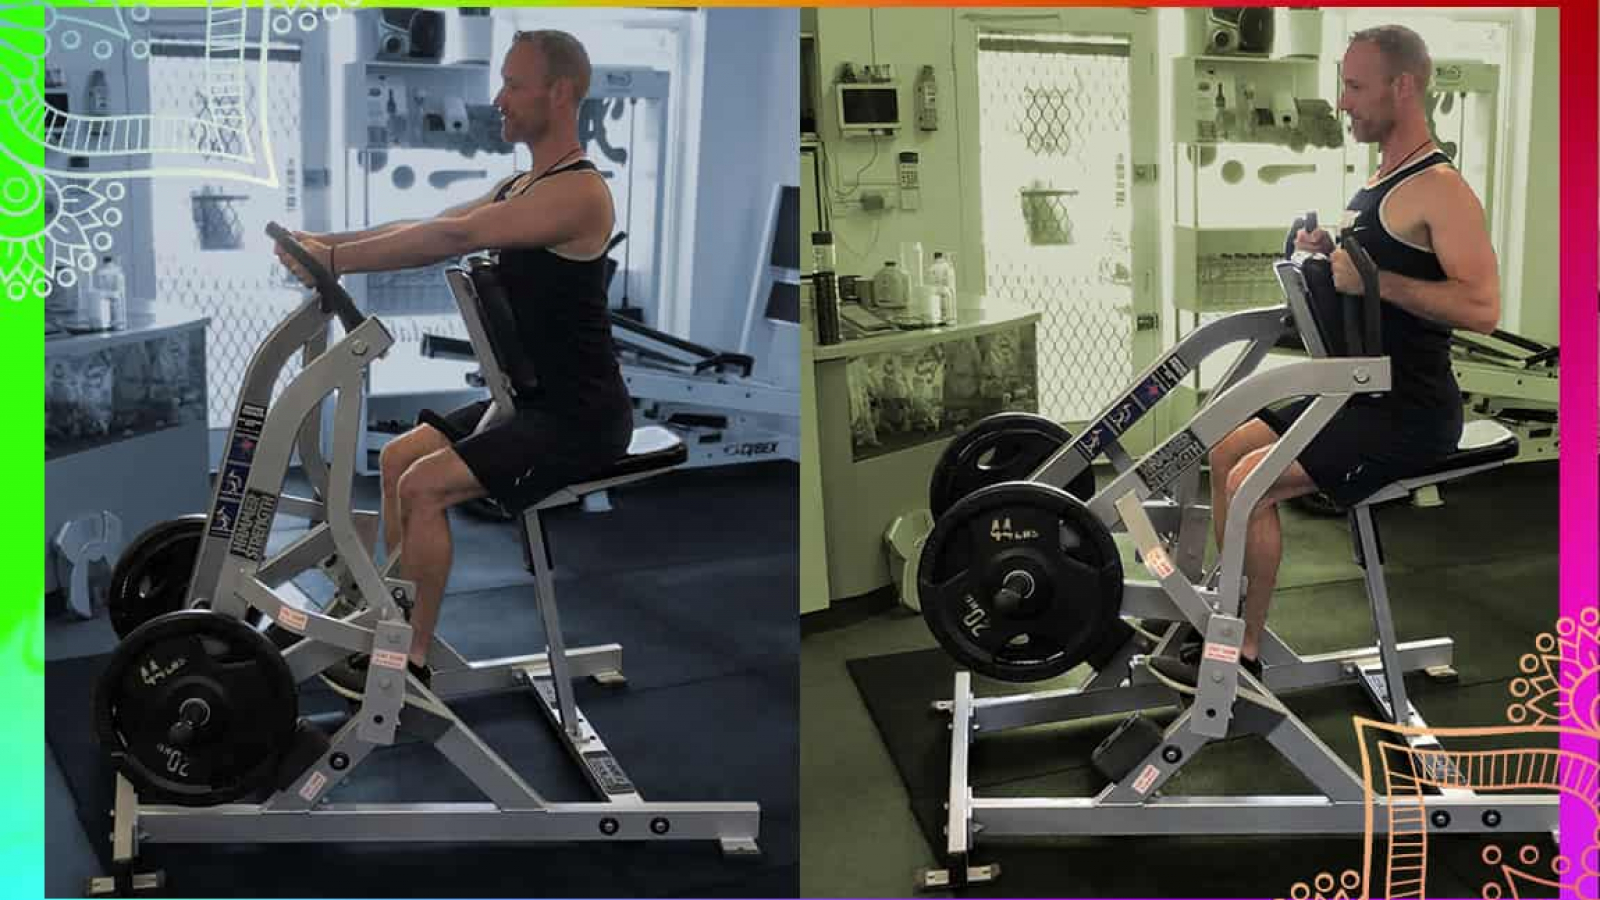 Demonstration of the seated row